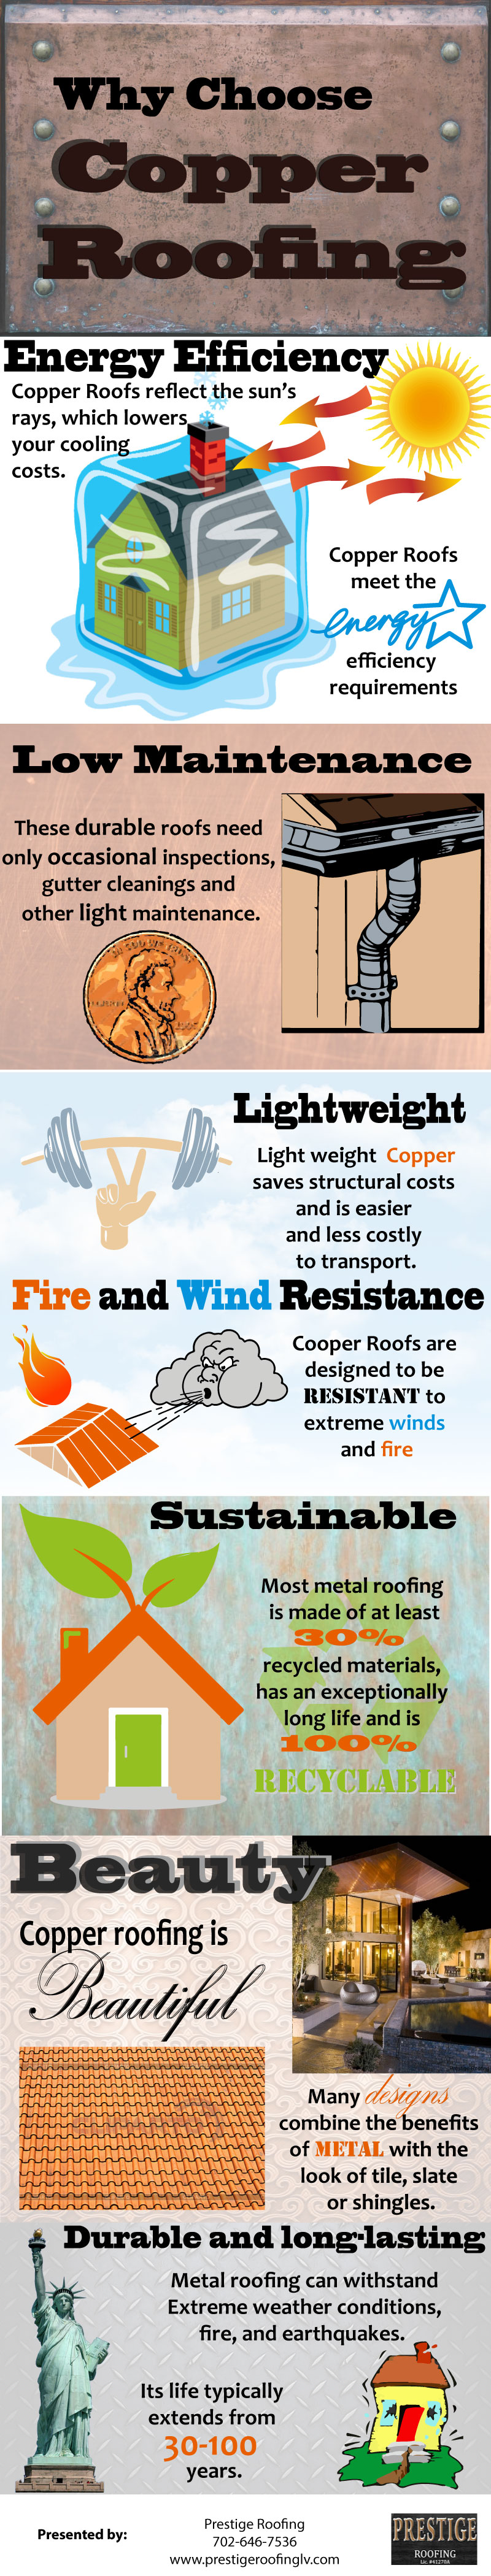 Infographic on the advantages and qualities of copper roofing